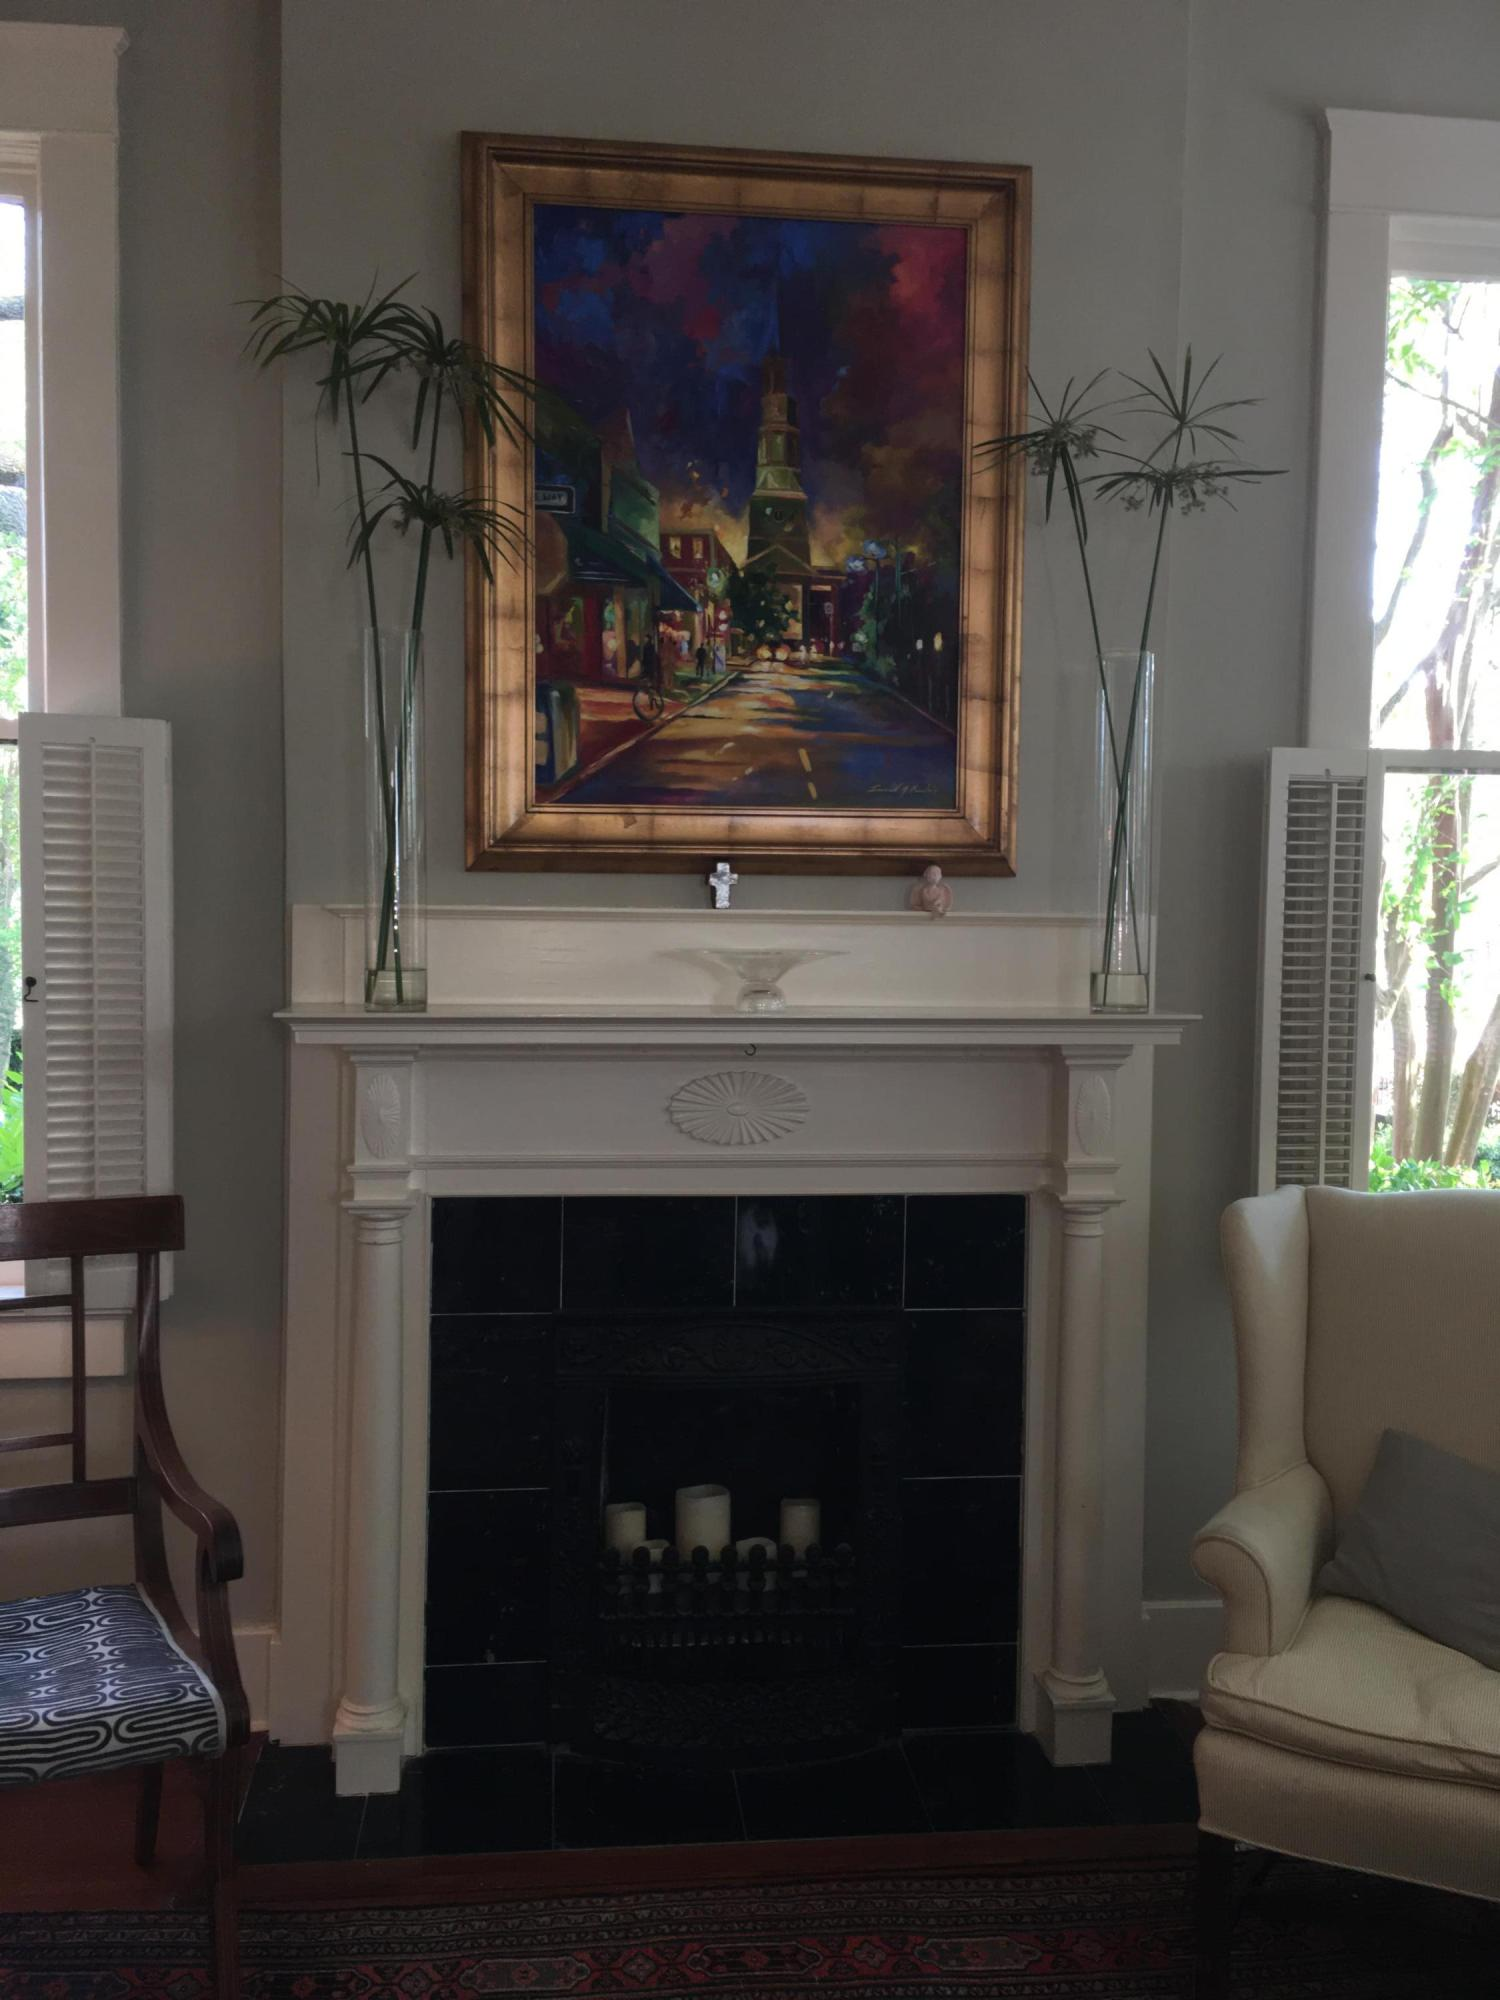 Home for sale 24 Limehouse Street, South Of Broad, Downtown Charleston, SC